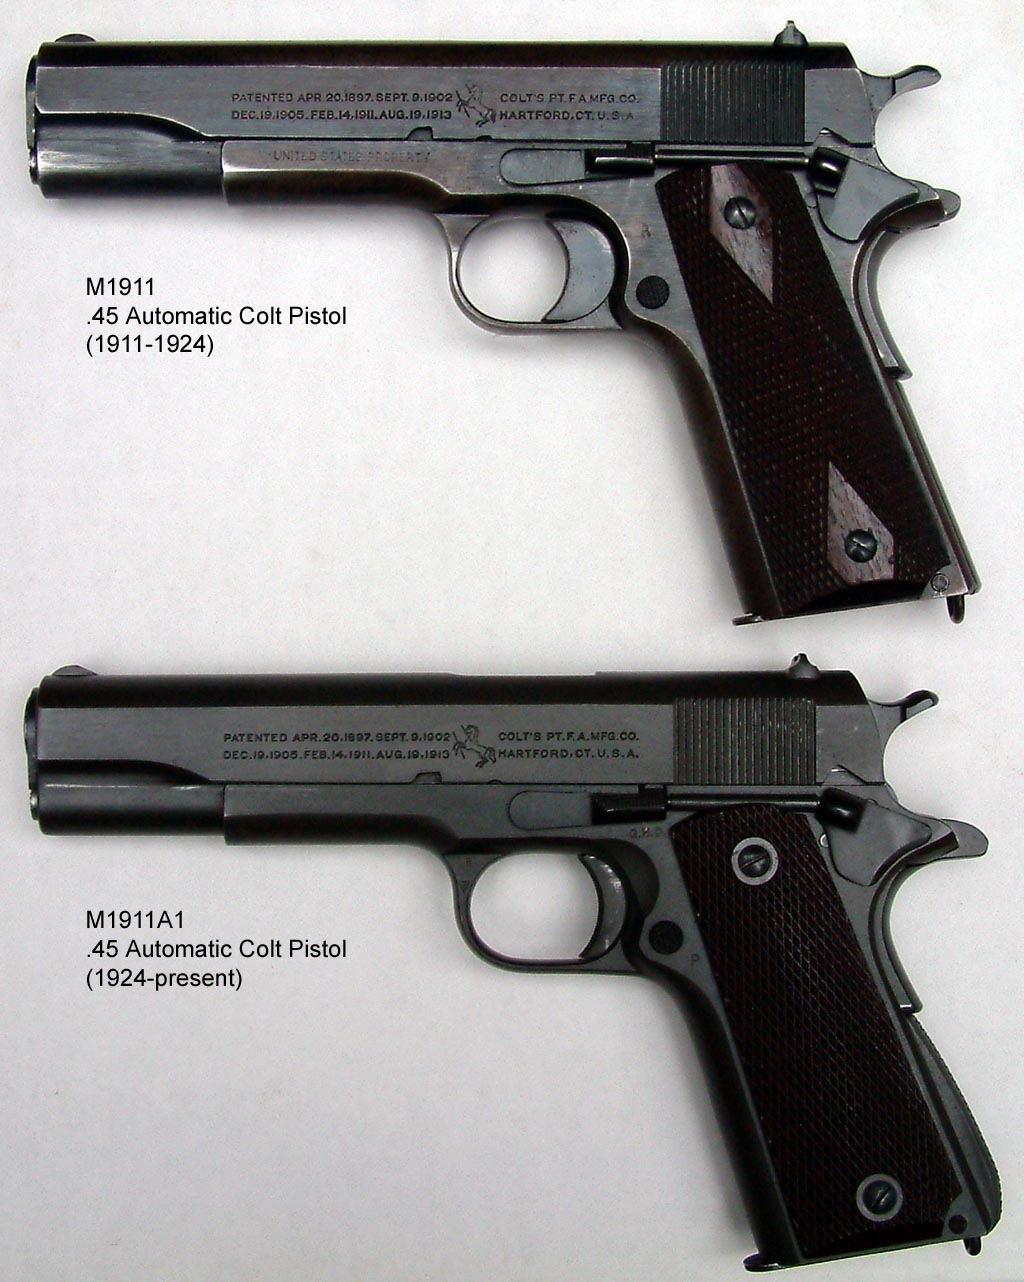 38 Best Nn1 Images On Pinterest: M1911 And M1911A1 Pistols